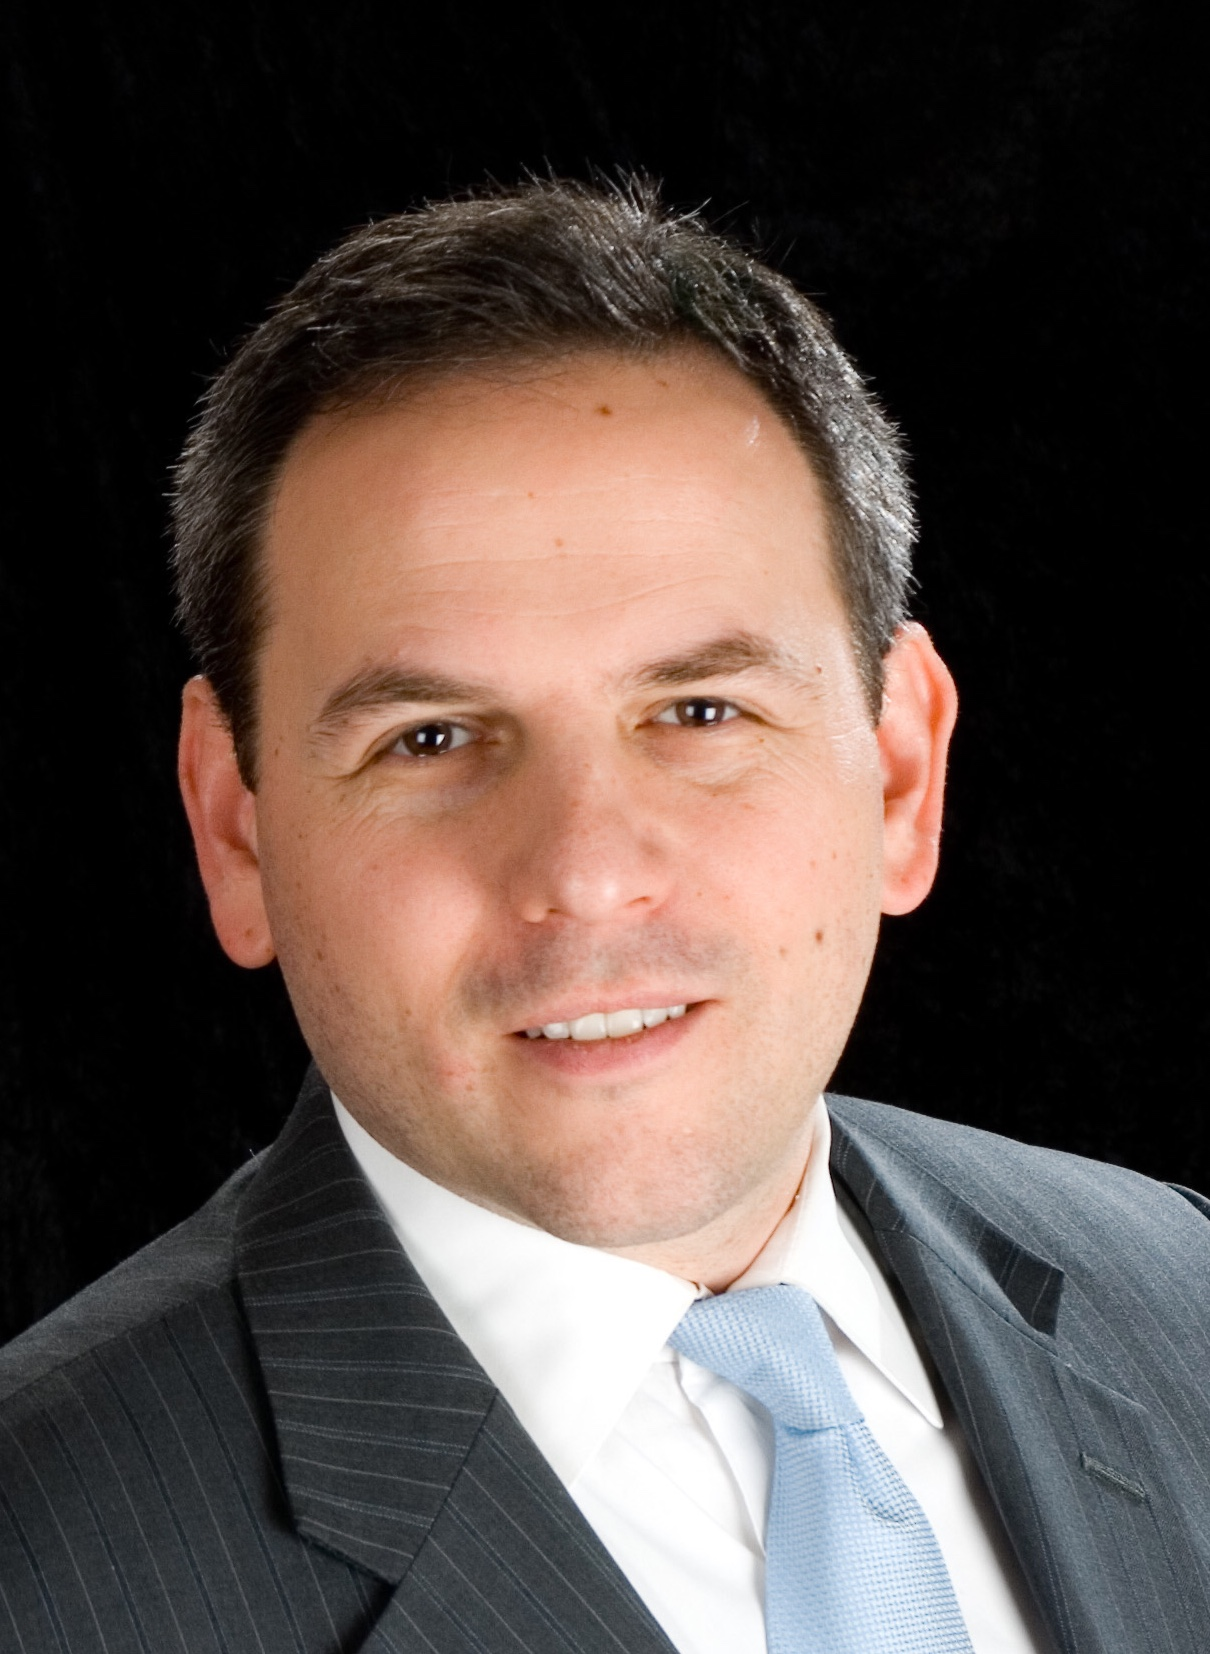 Jeffrey Baron, Esq, owner of Baron Law Firm, PLLC, in East Northport, has established a firm that is dedicated to providing undivided attention for every client it serves.   Photo provided by Jeffrey Baron